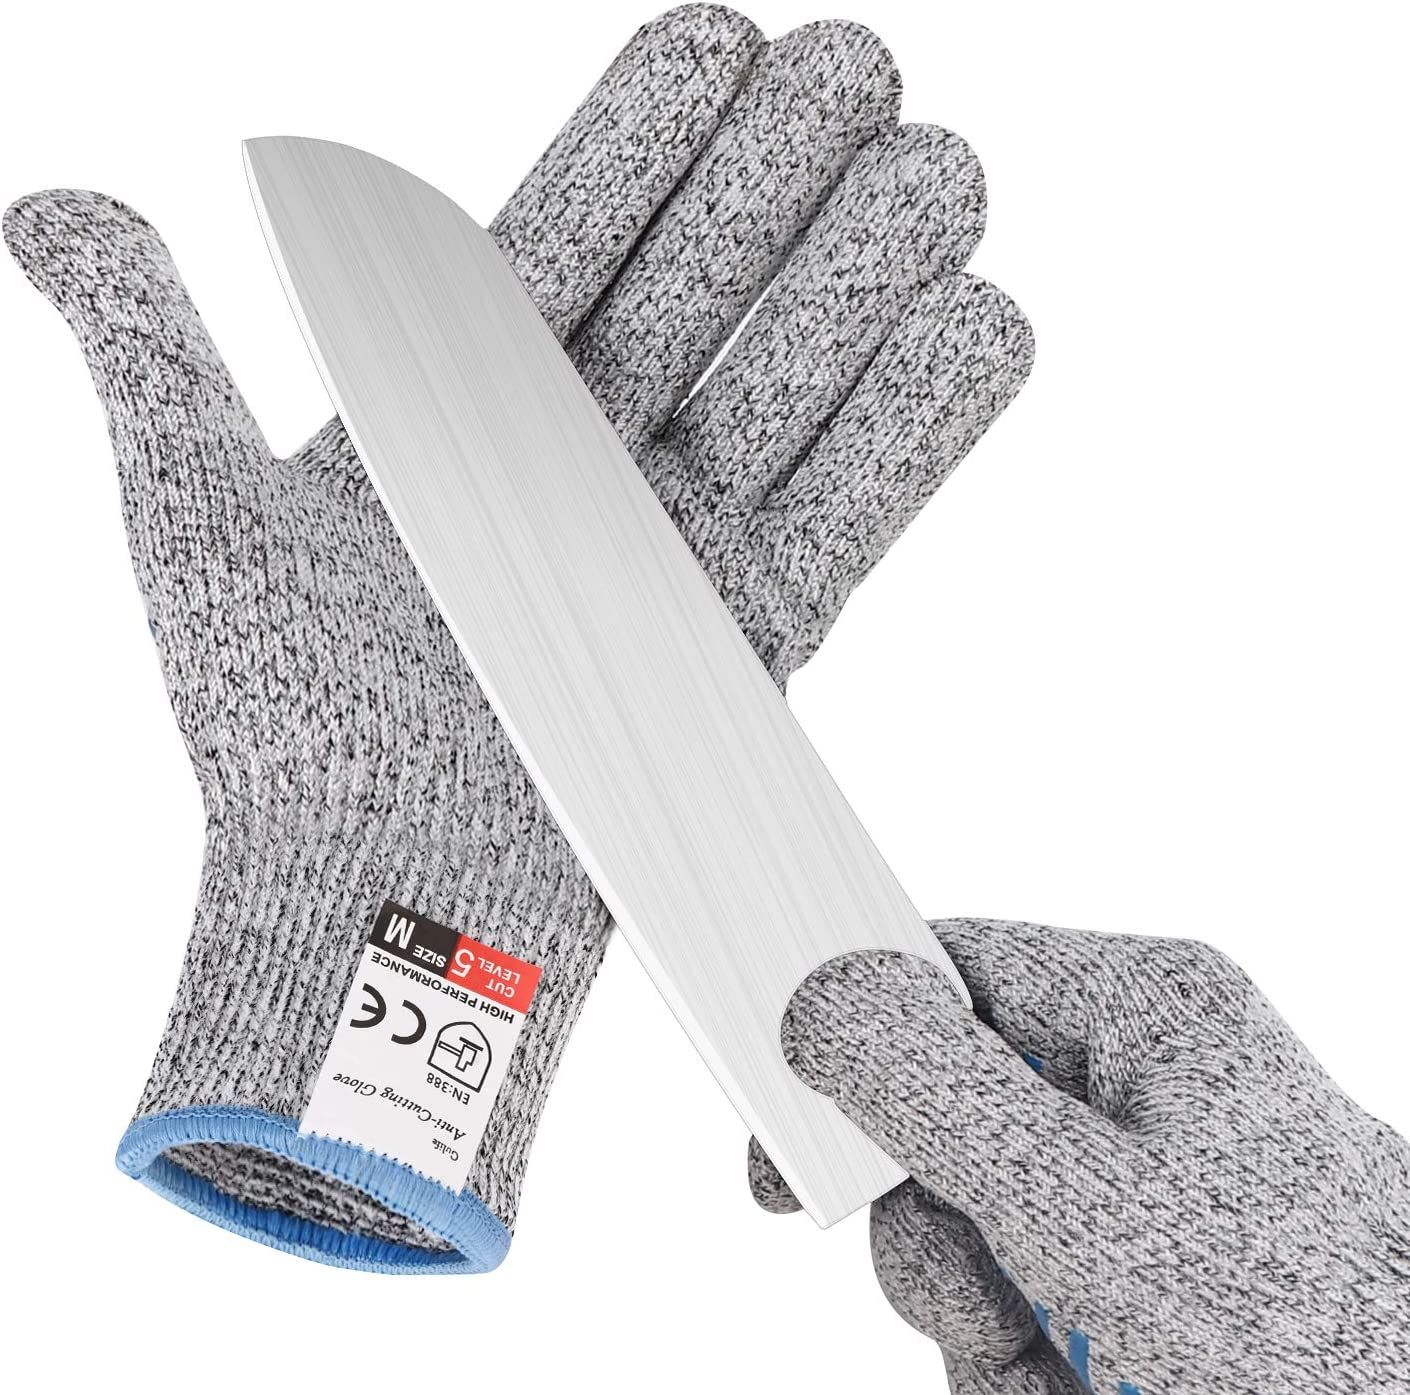 Gülife Cut Resistant Gloves Food Grade Level 5 Protection, Touch Screen Sensitive, Safety Cutting Gloves for Kitchen and Outdoor, Size Medium (1 Pair included)